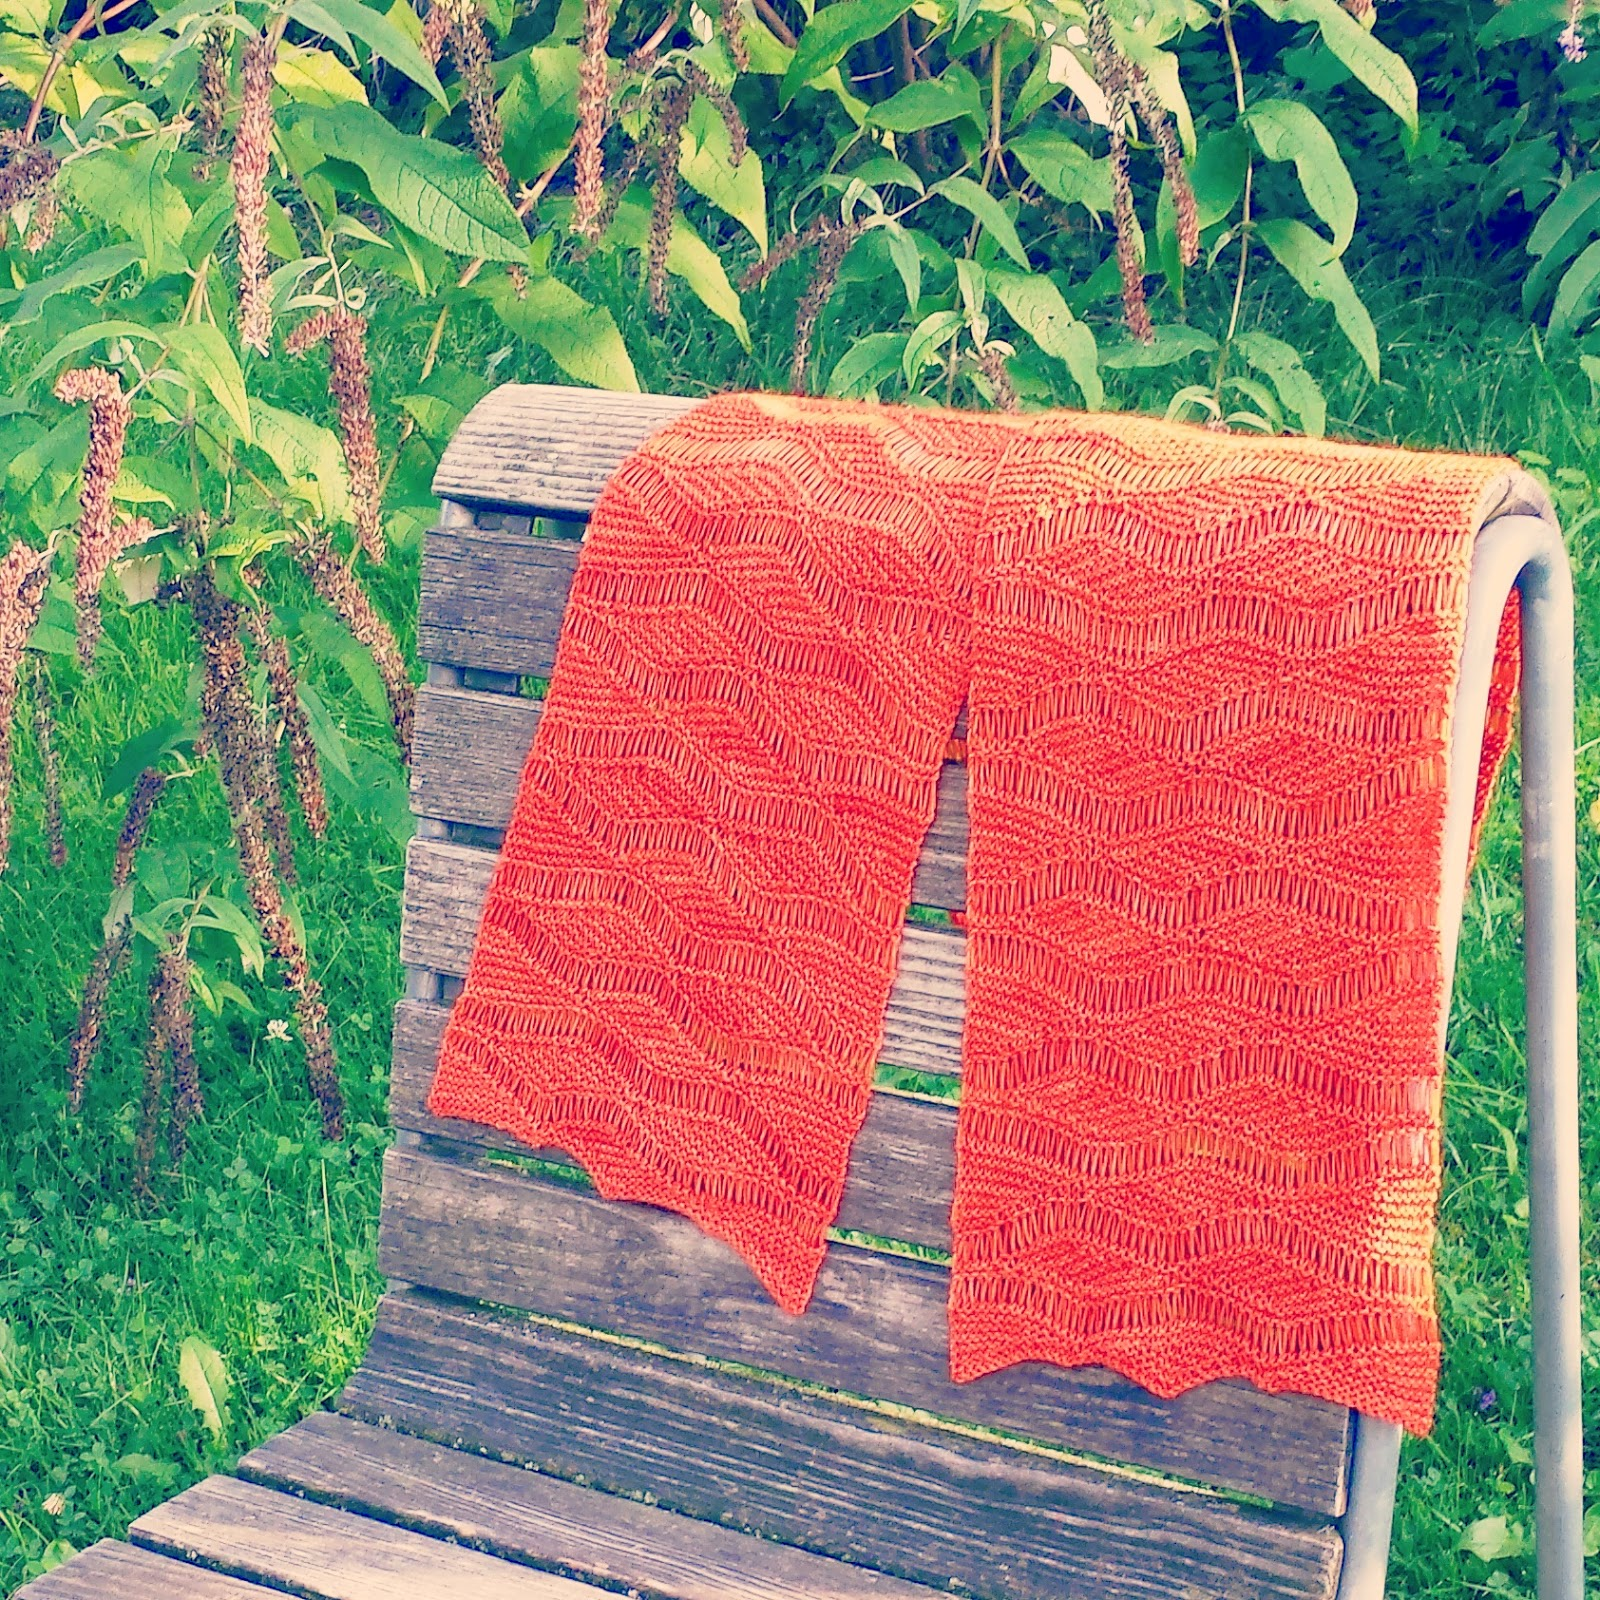 Knitting and so on: Wellengang Short Row Scarf